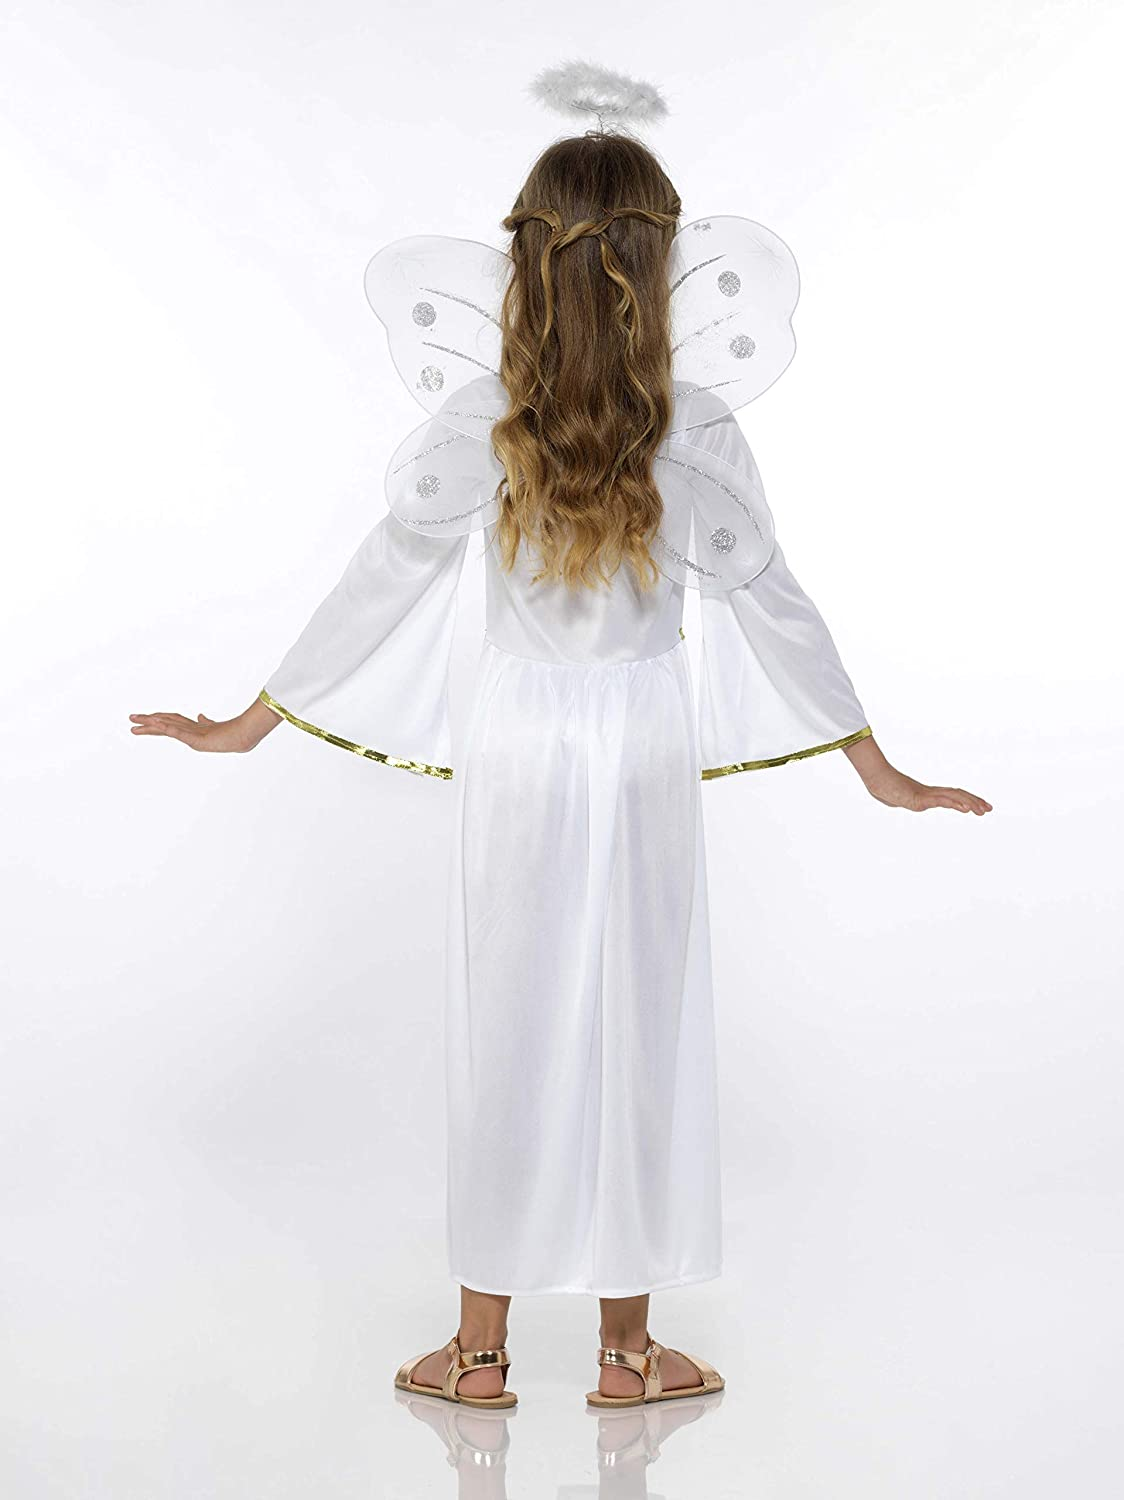 Angel Costume - Halloween Girls Angelic Dress, Halo, Wings, White